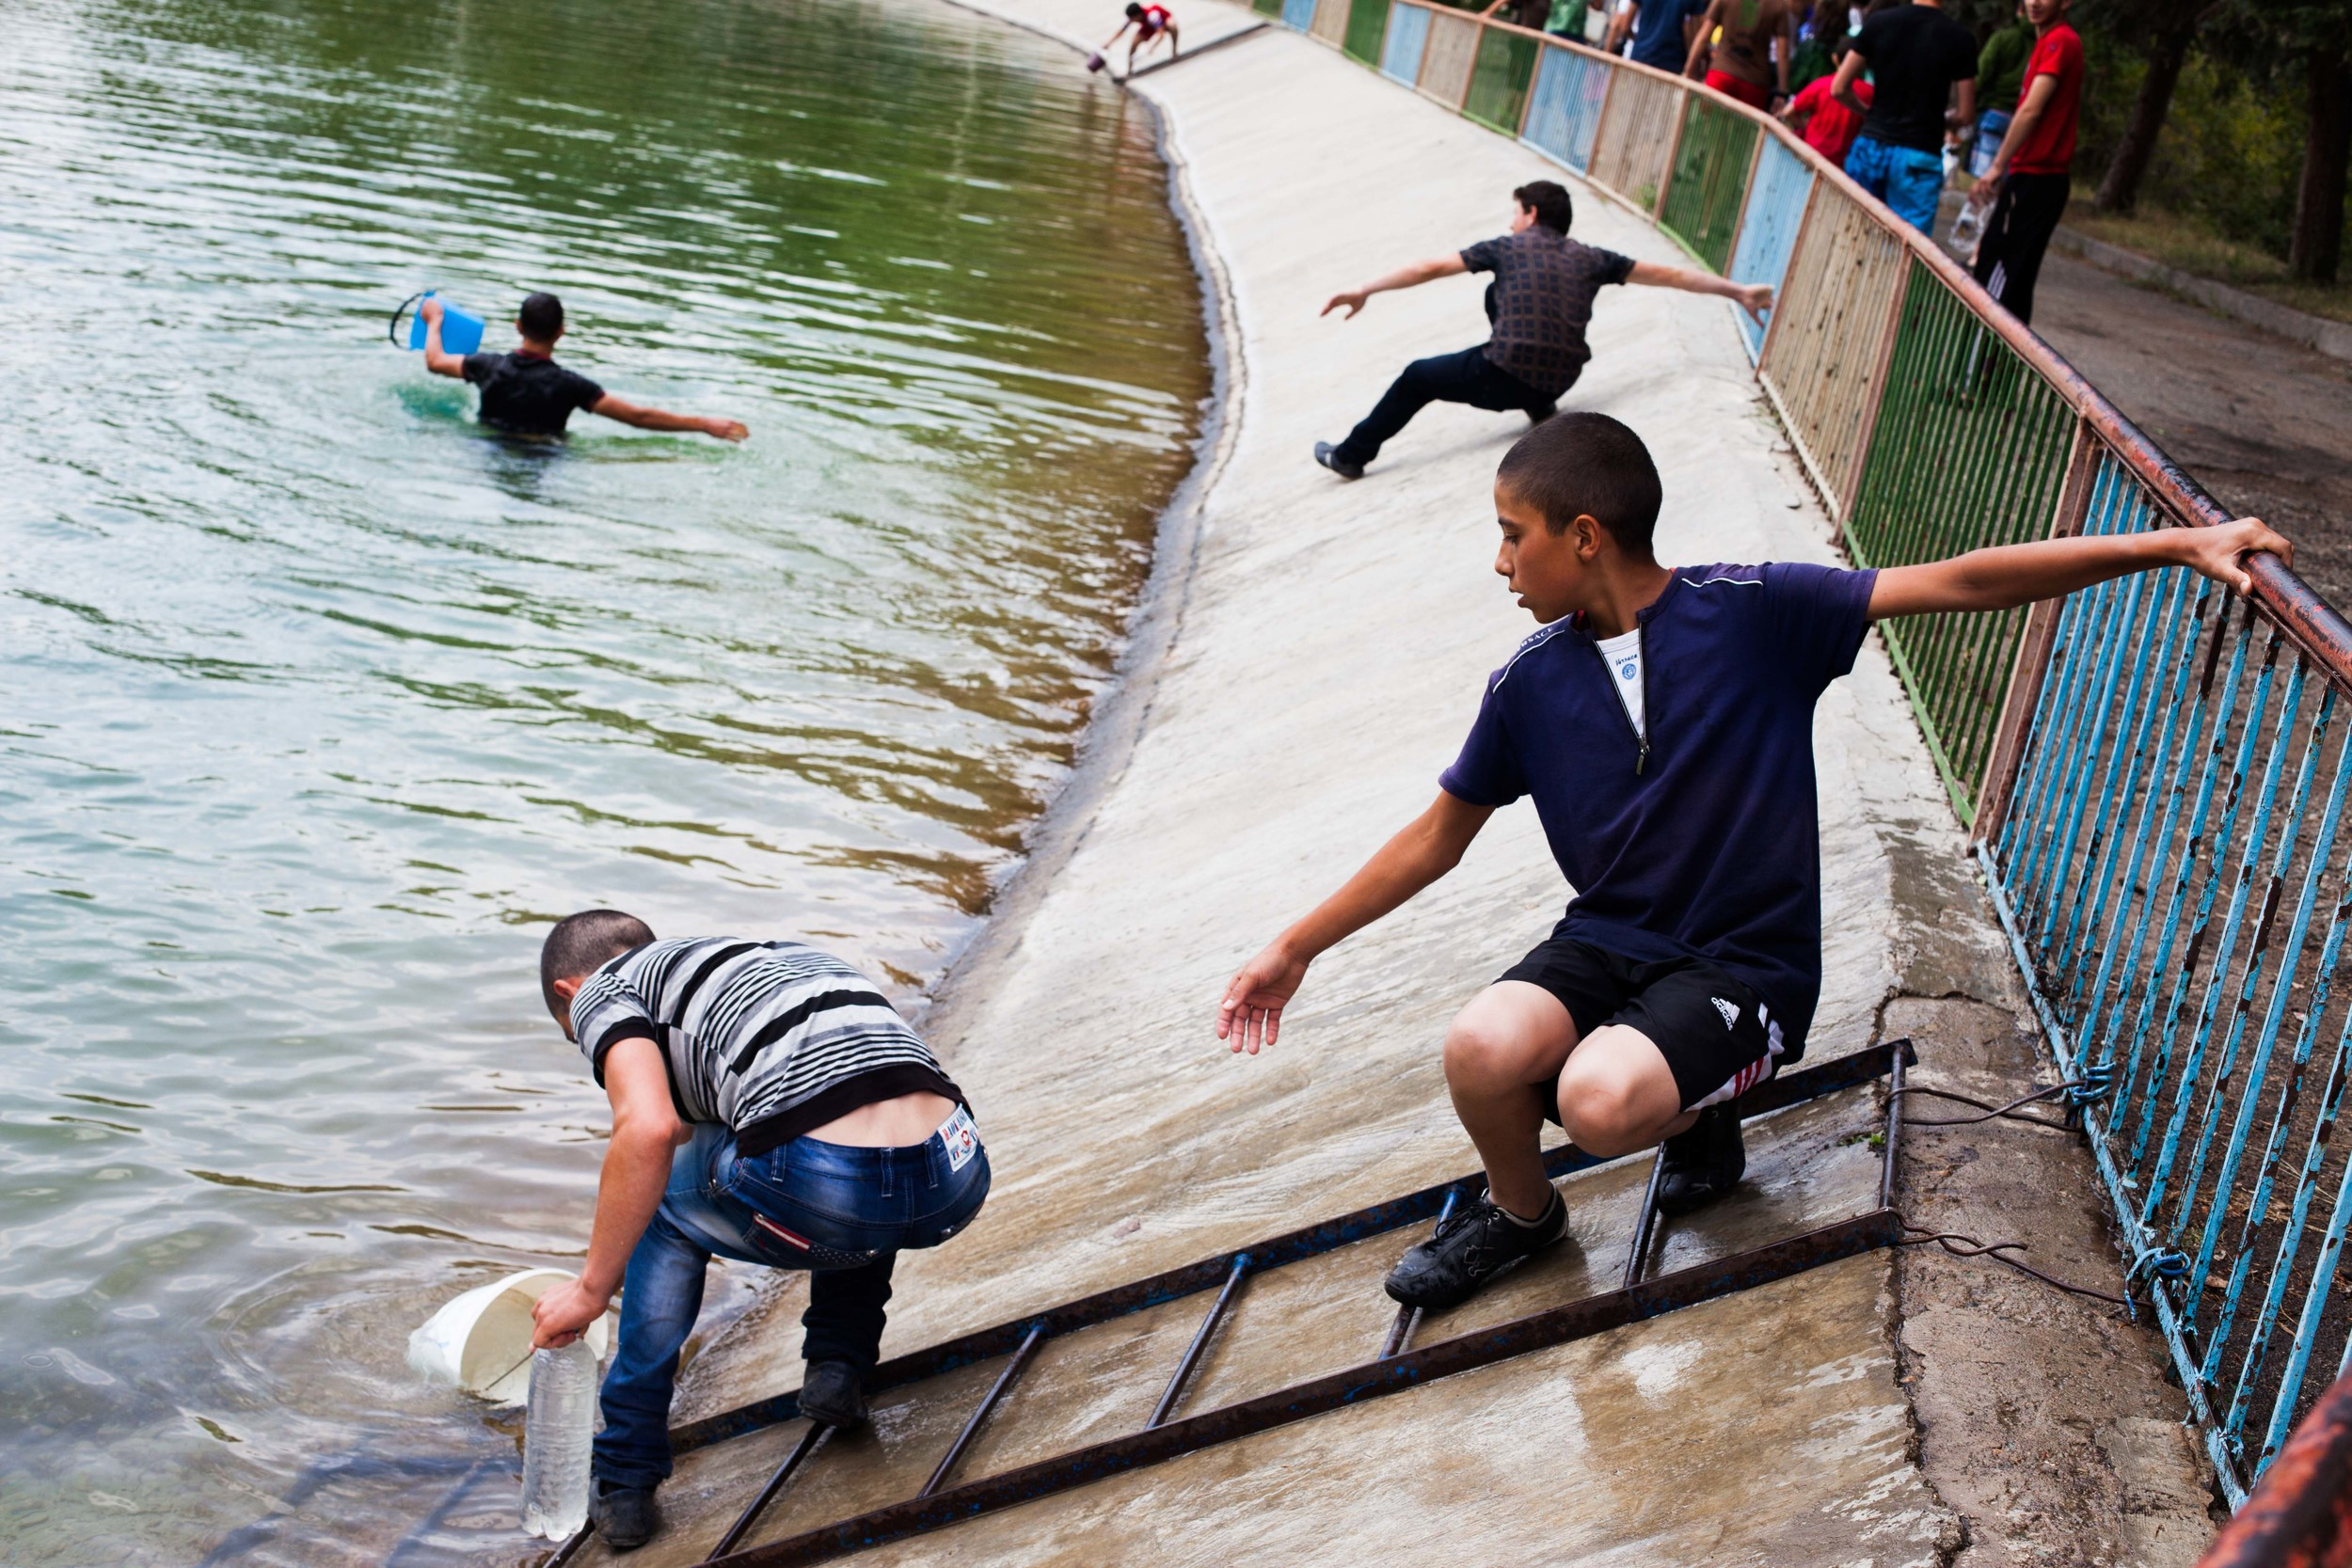 Spitak youth enjoy the festival of Vardavar, which comes 14 weeks after Easter and is influenced by the country's Pagan roots, is an opportunity for people of any age to douse friends and unsuspecting strangers with water without consequence.